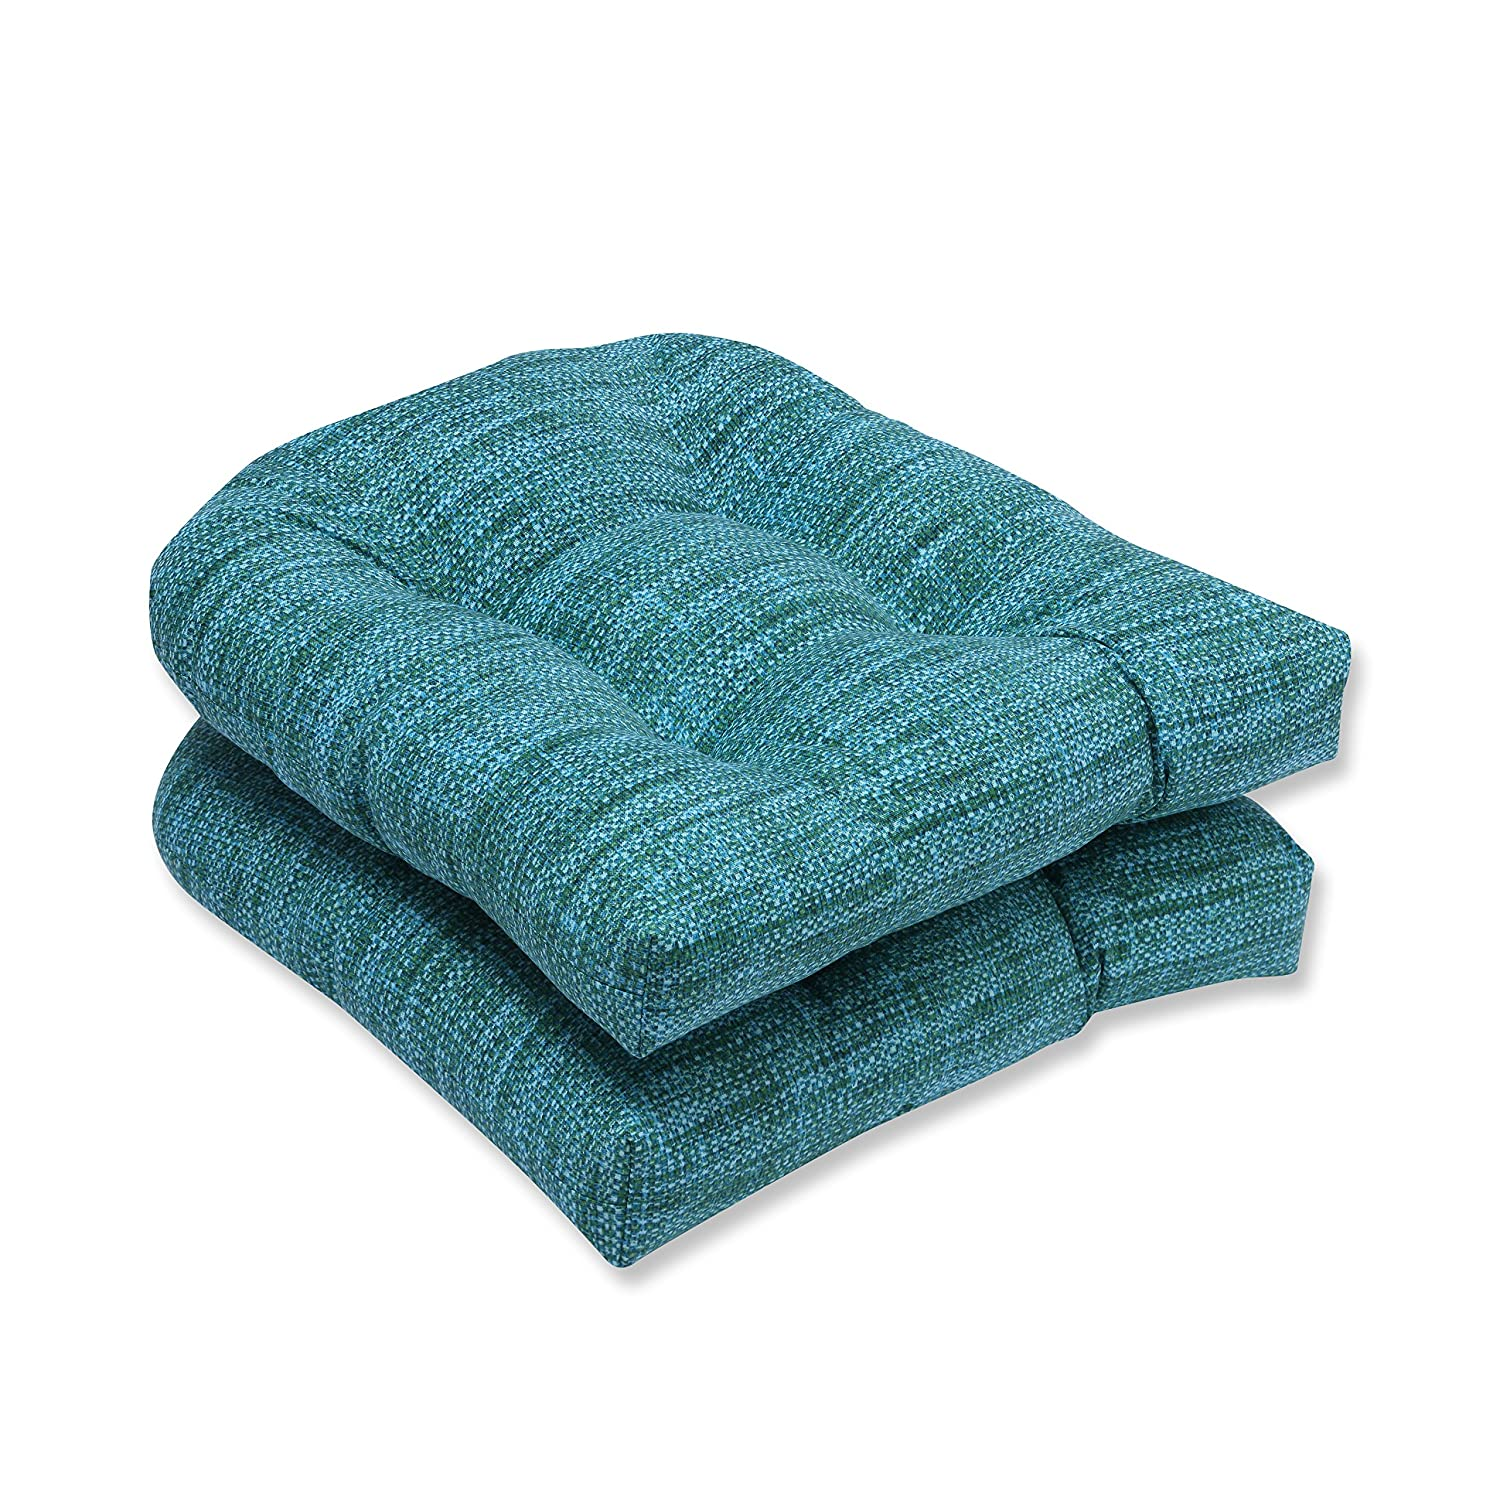 Pillow Perfect Outdoor Indoor Remi Lagoon Wicker Seat Cushion Set of 2